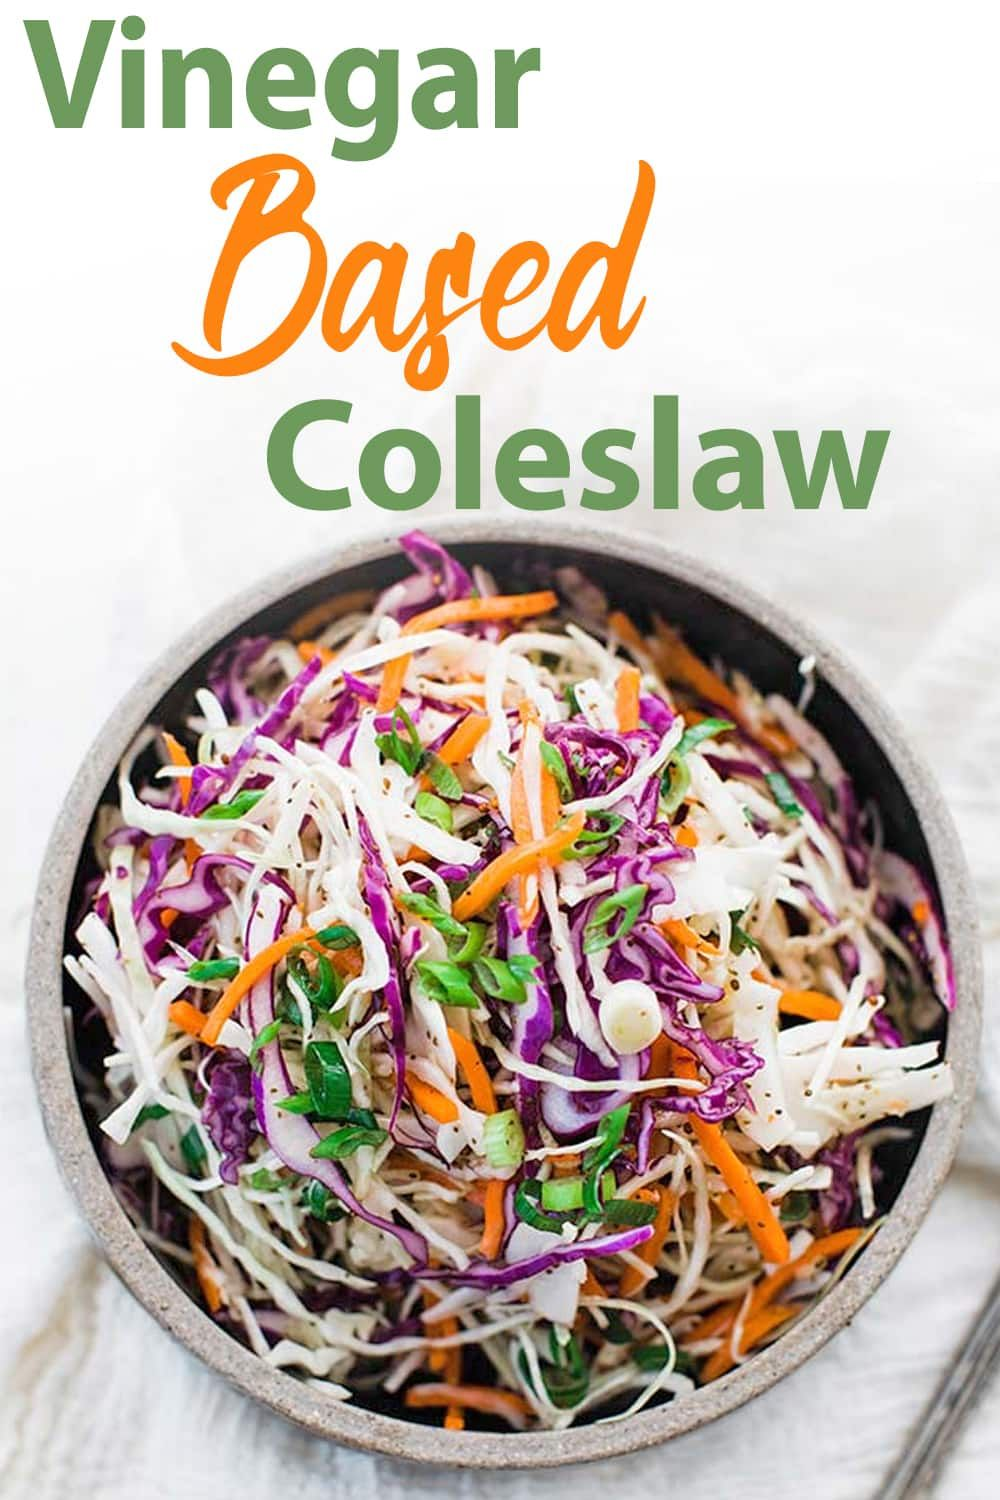 Vinegar Based Coleslaw Recipe  this delicious coleslaw is loaded with green cabbage red cabbage carrots and green onions in a tasty sweet cider vinaigrette